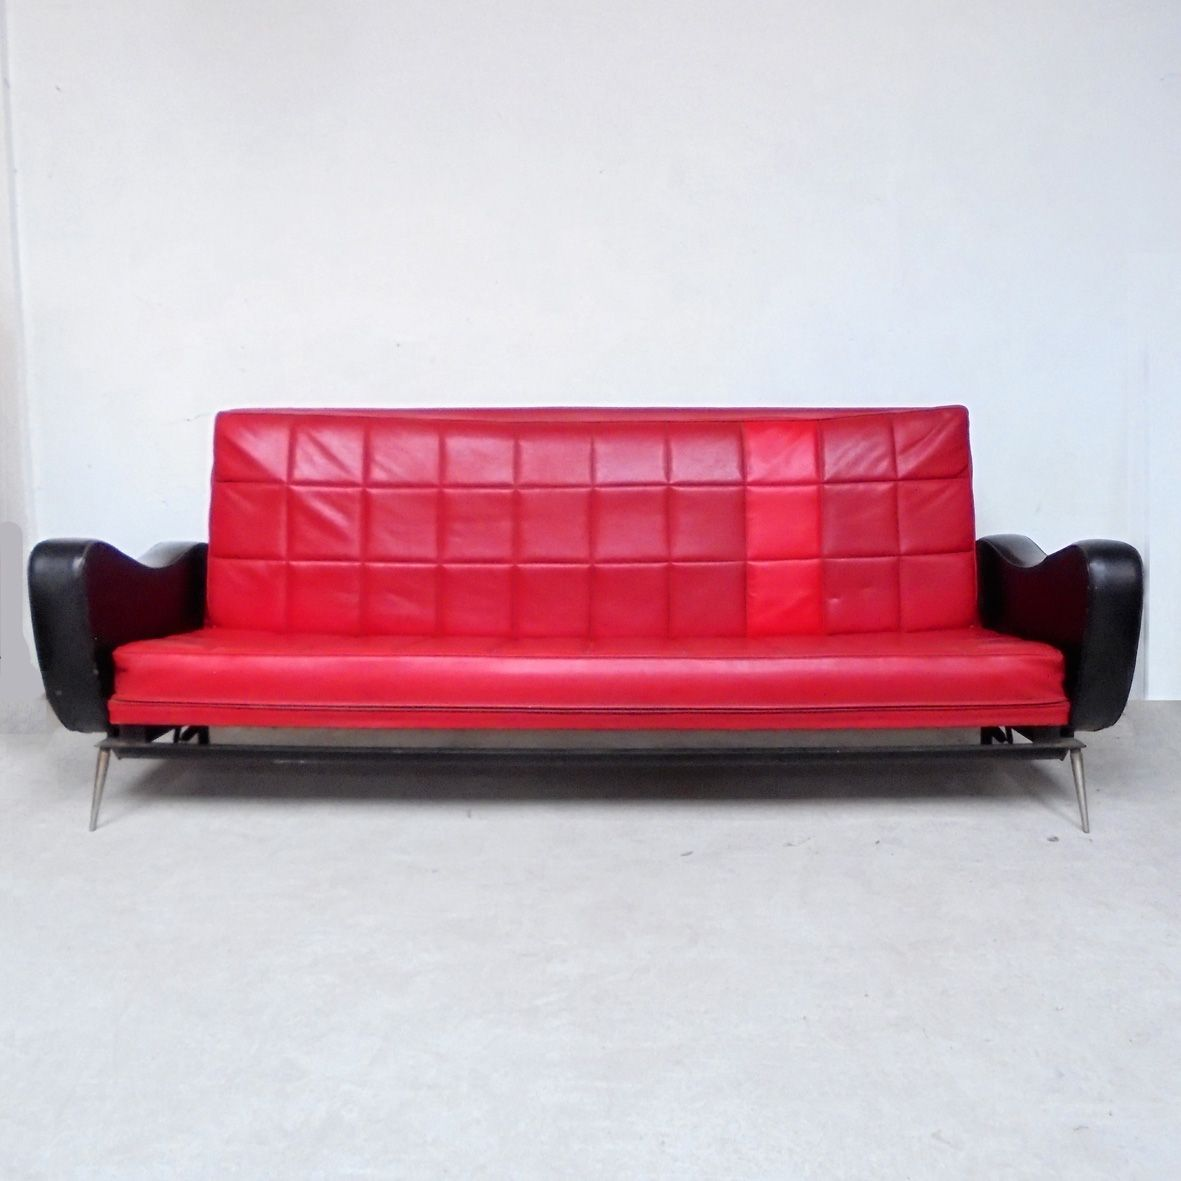 Vintage black and red skai sofa bed 1950s for sale at pamono for Sofa bed 50s